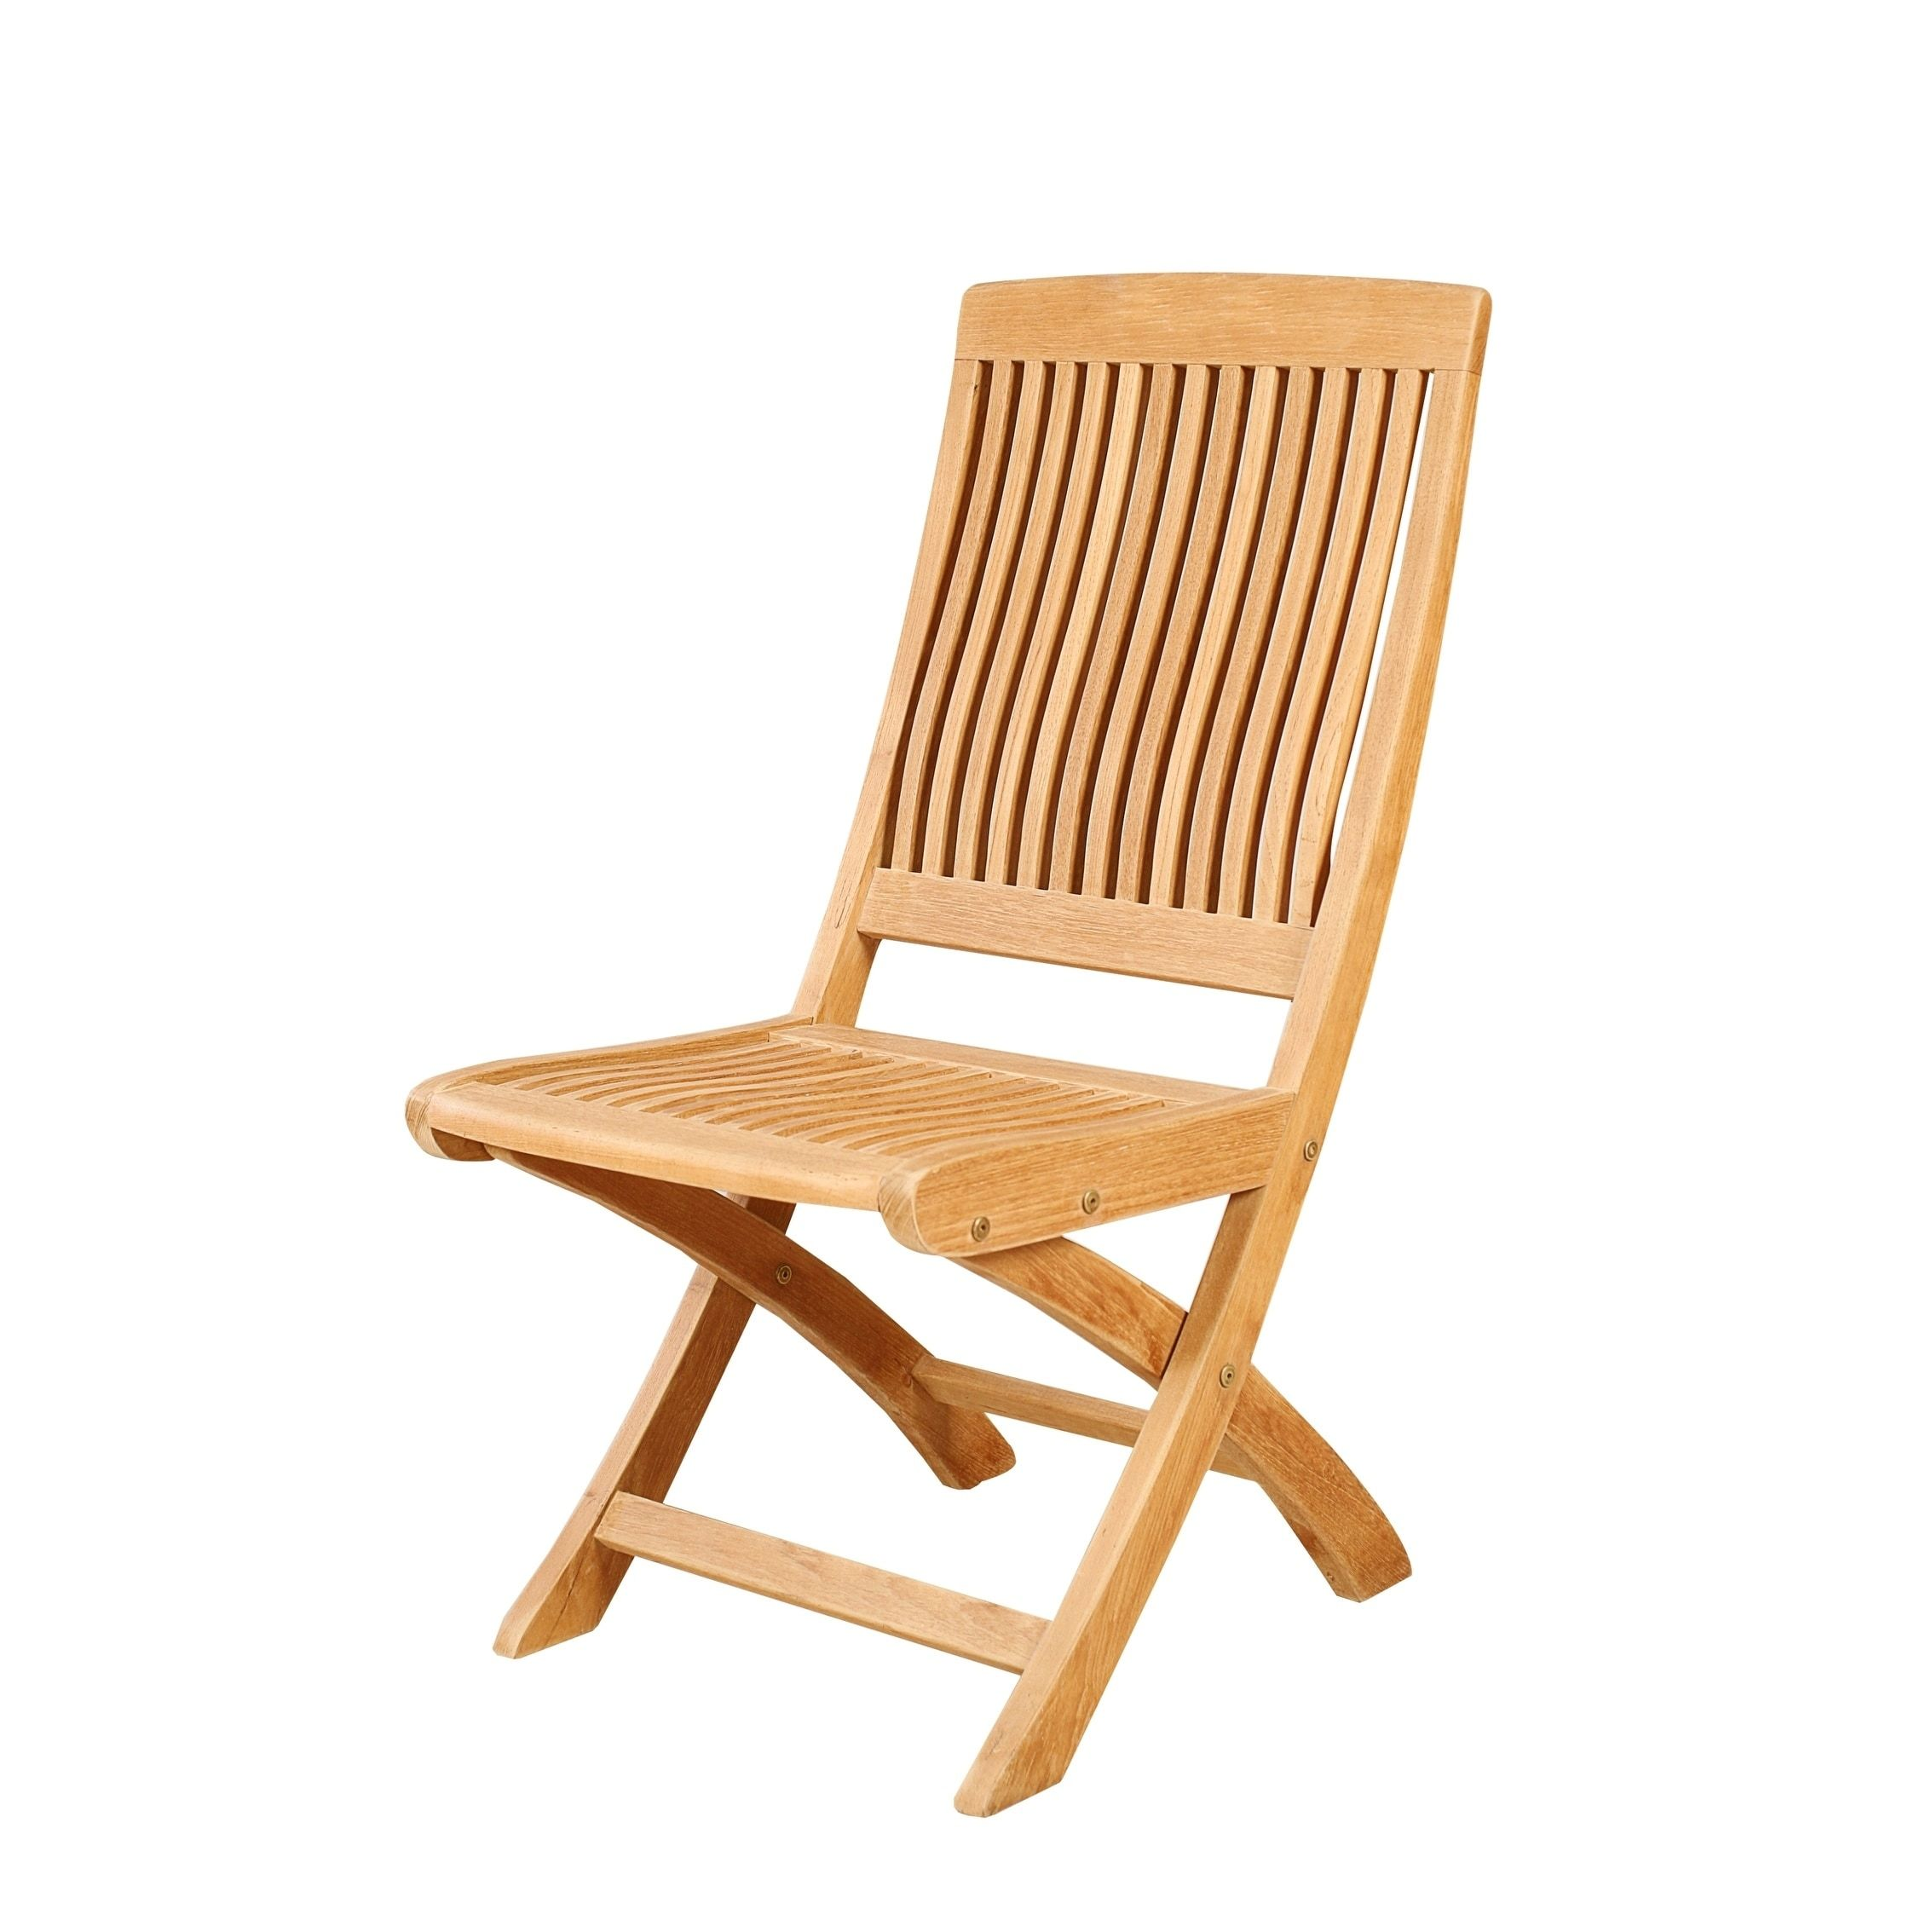 Patio Folding Chairs Hiteak Asa Outdoor Teak Folding Chair Natural Size Single Patio